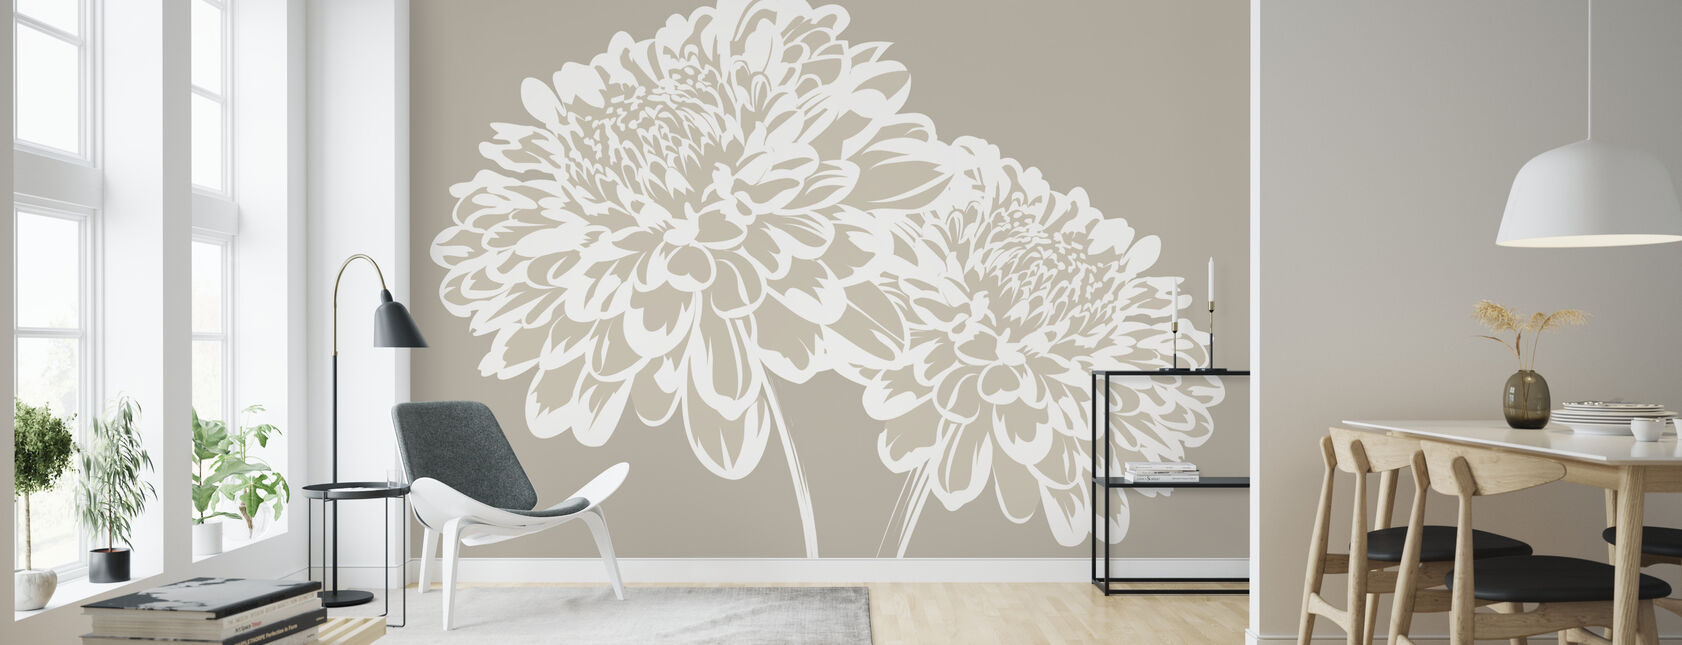 Blossom my Heart - Light Beige - Wallpaper - Living Room